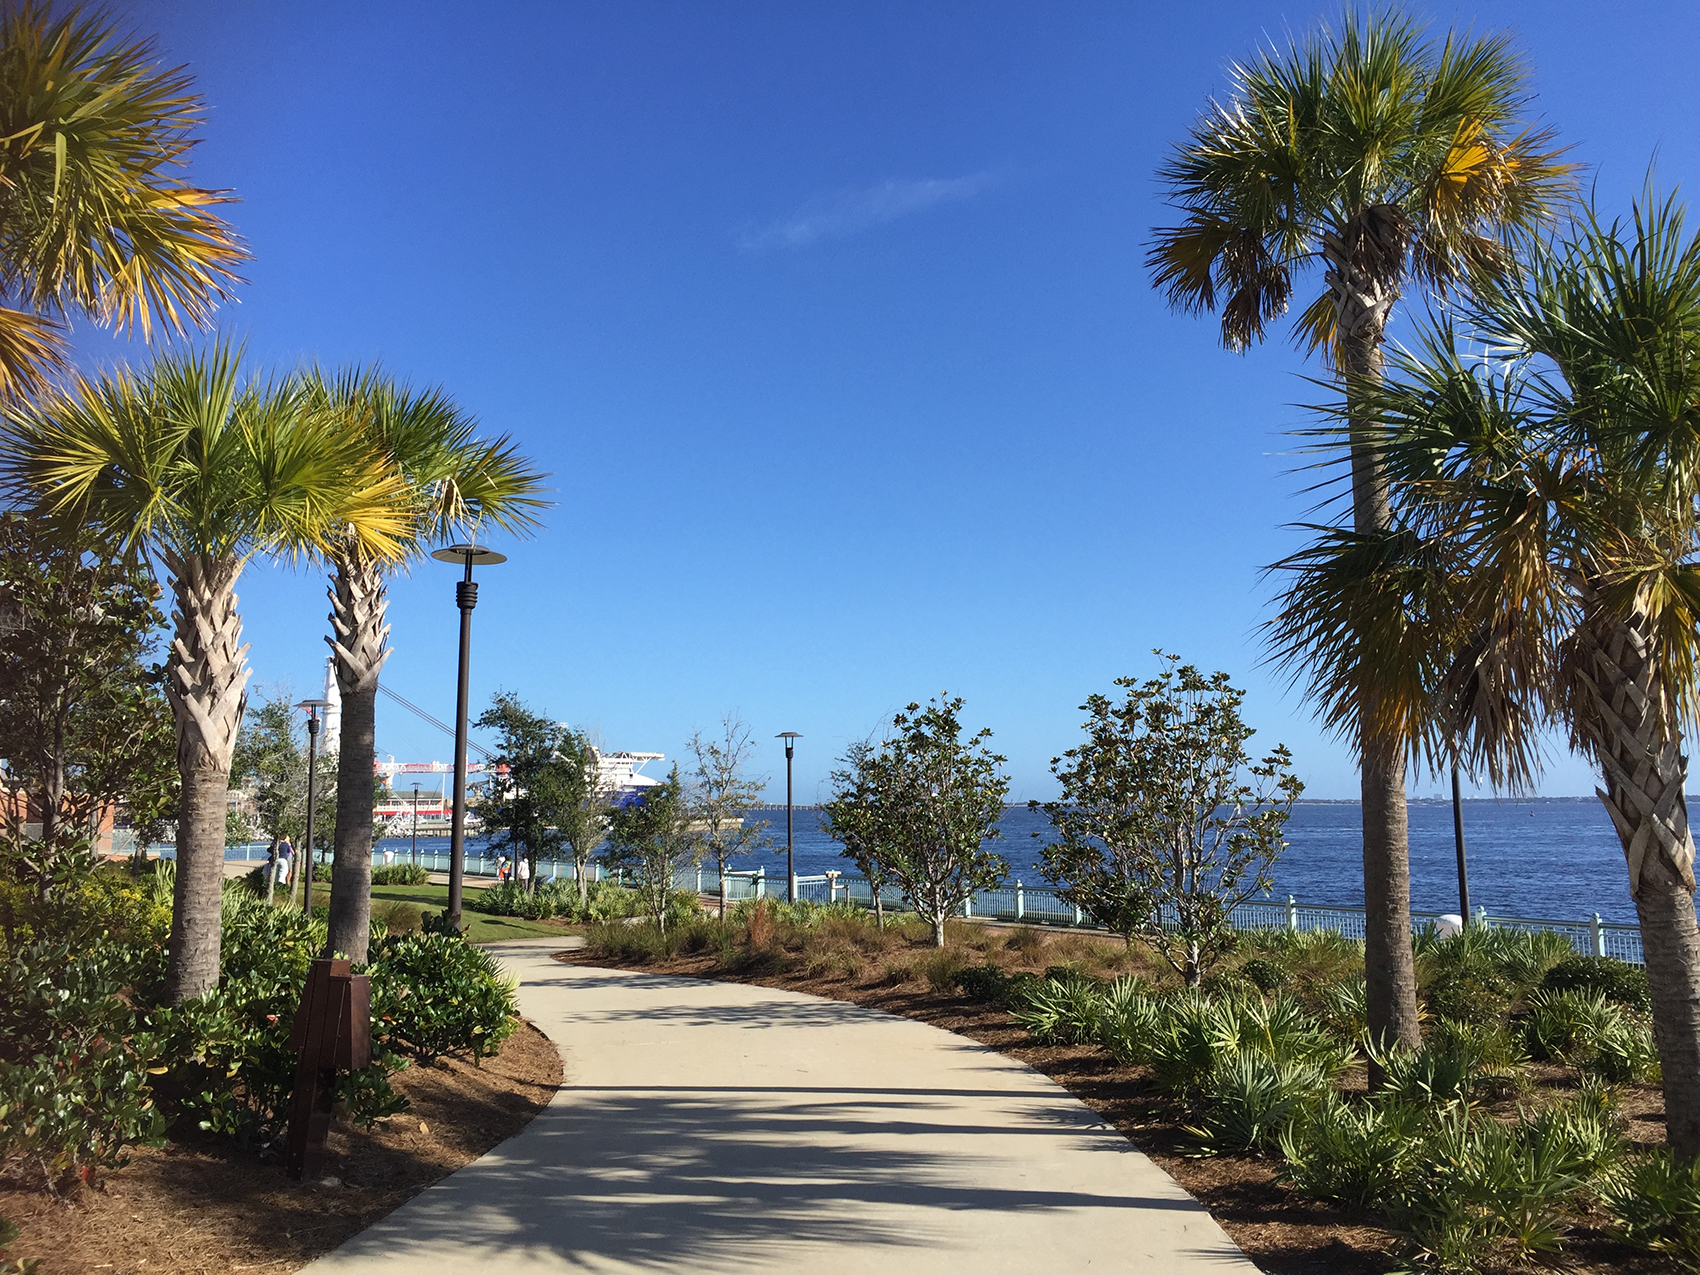 Walking Trails at Community Maritime Park